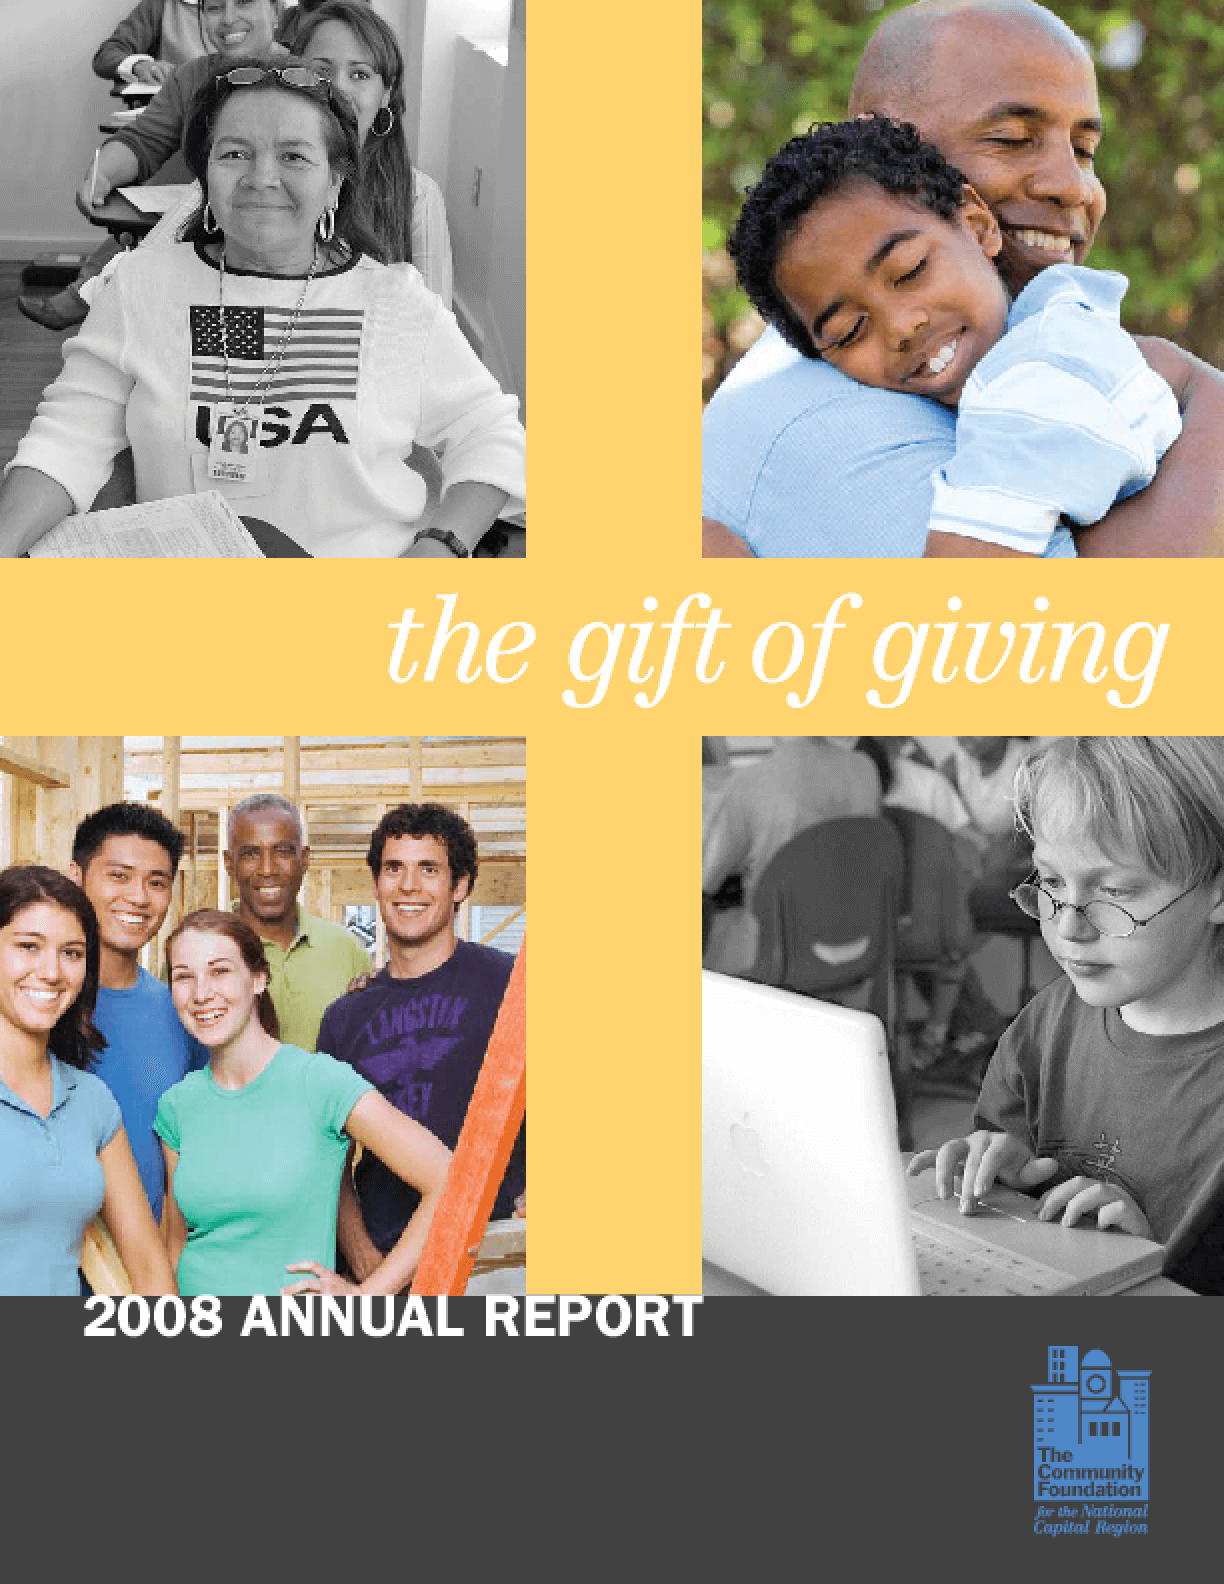 Community Foundation for the National Capital Region - 2008 Annual Report